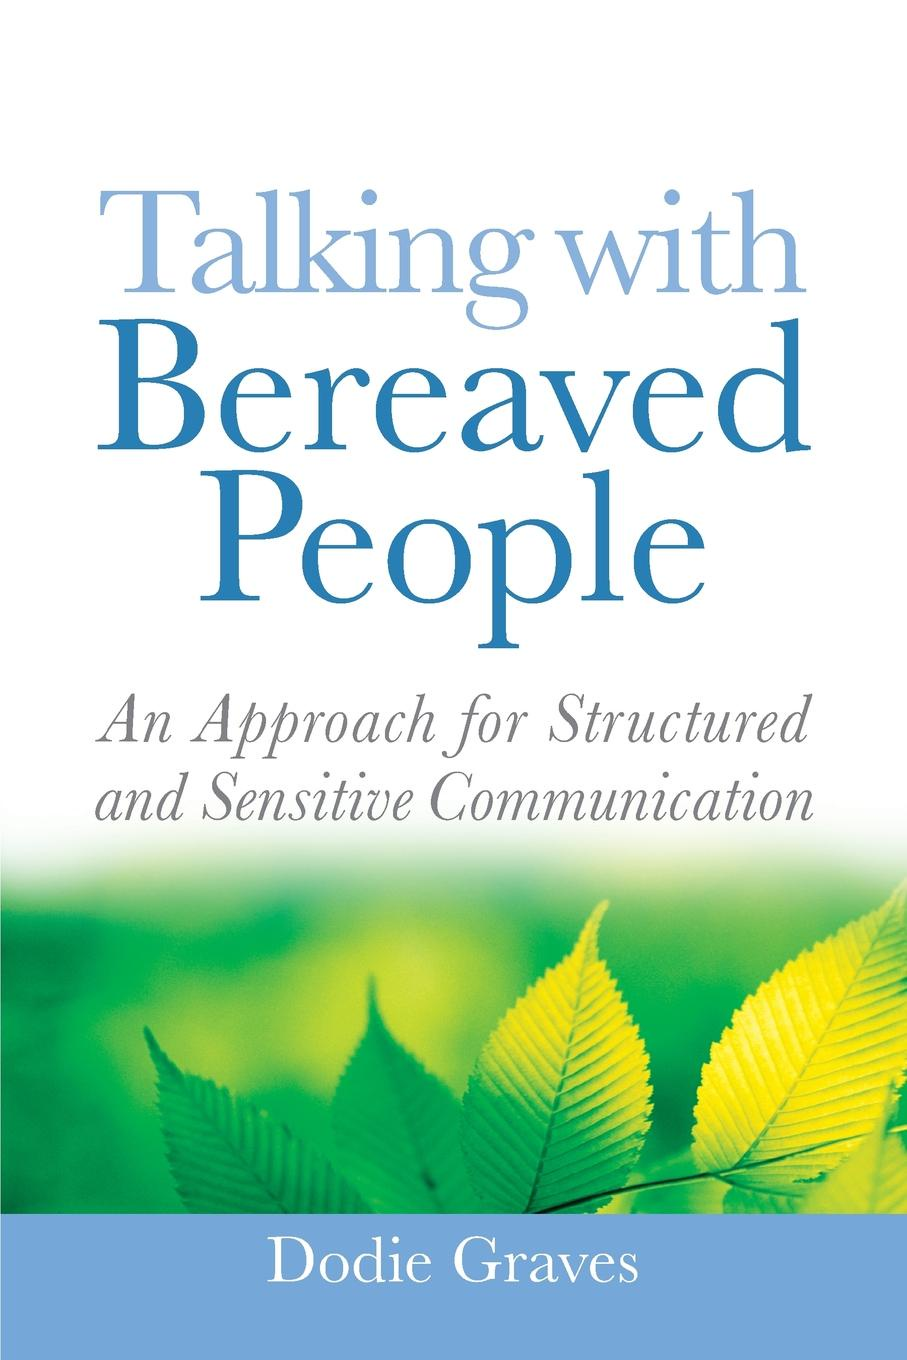 Dodie Graves Talking with Bereaved People. An Approach for Structured and Sensitive Communication недорго, оригинальная цена